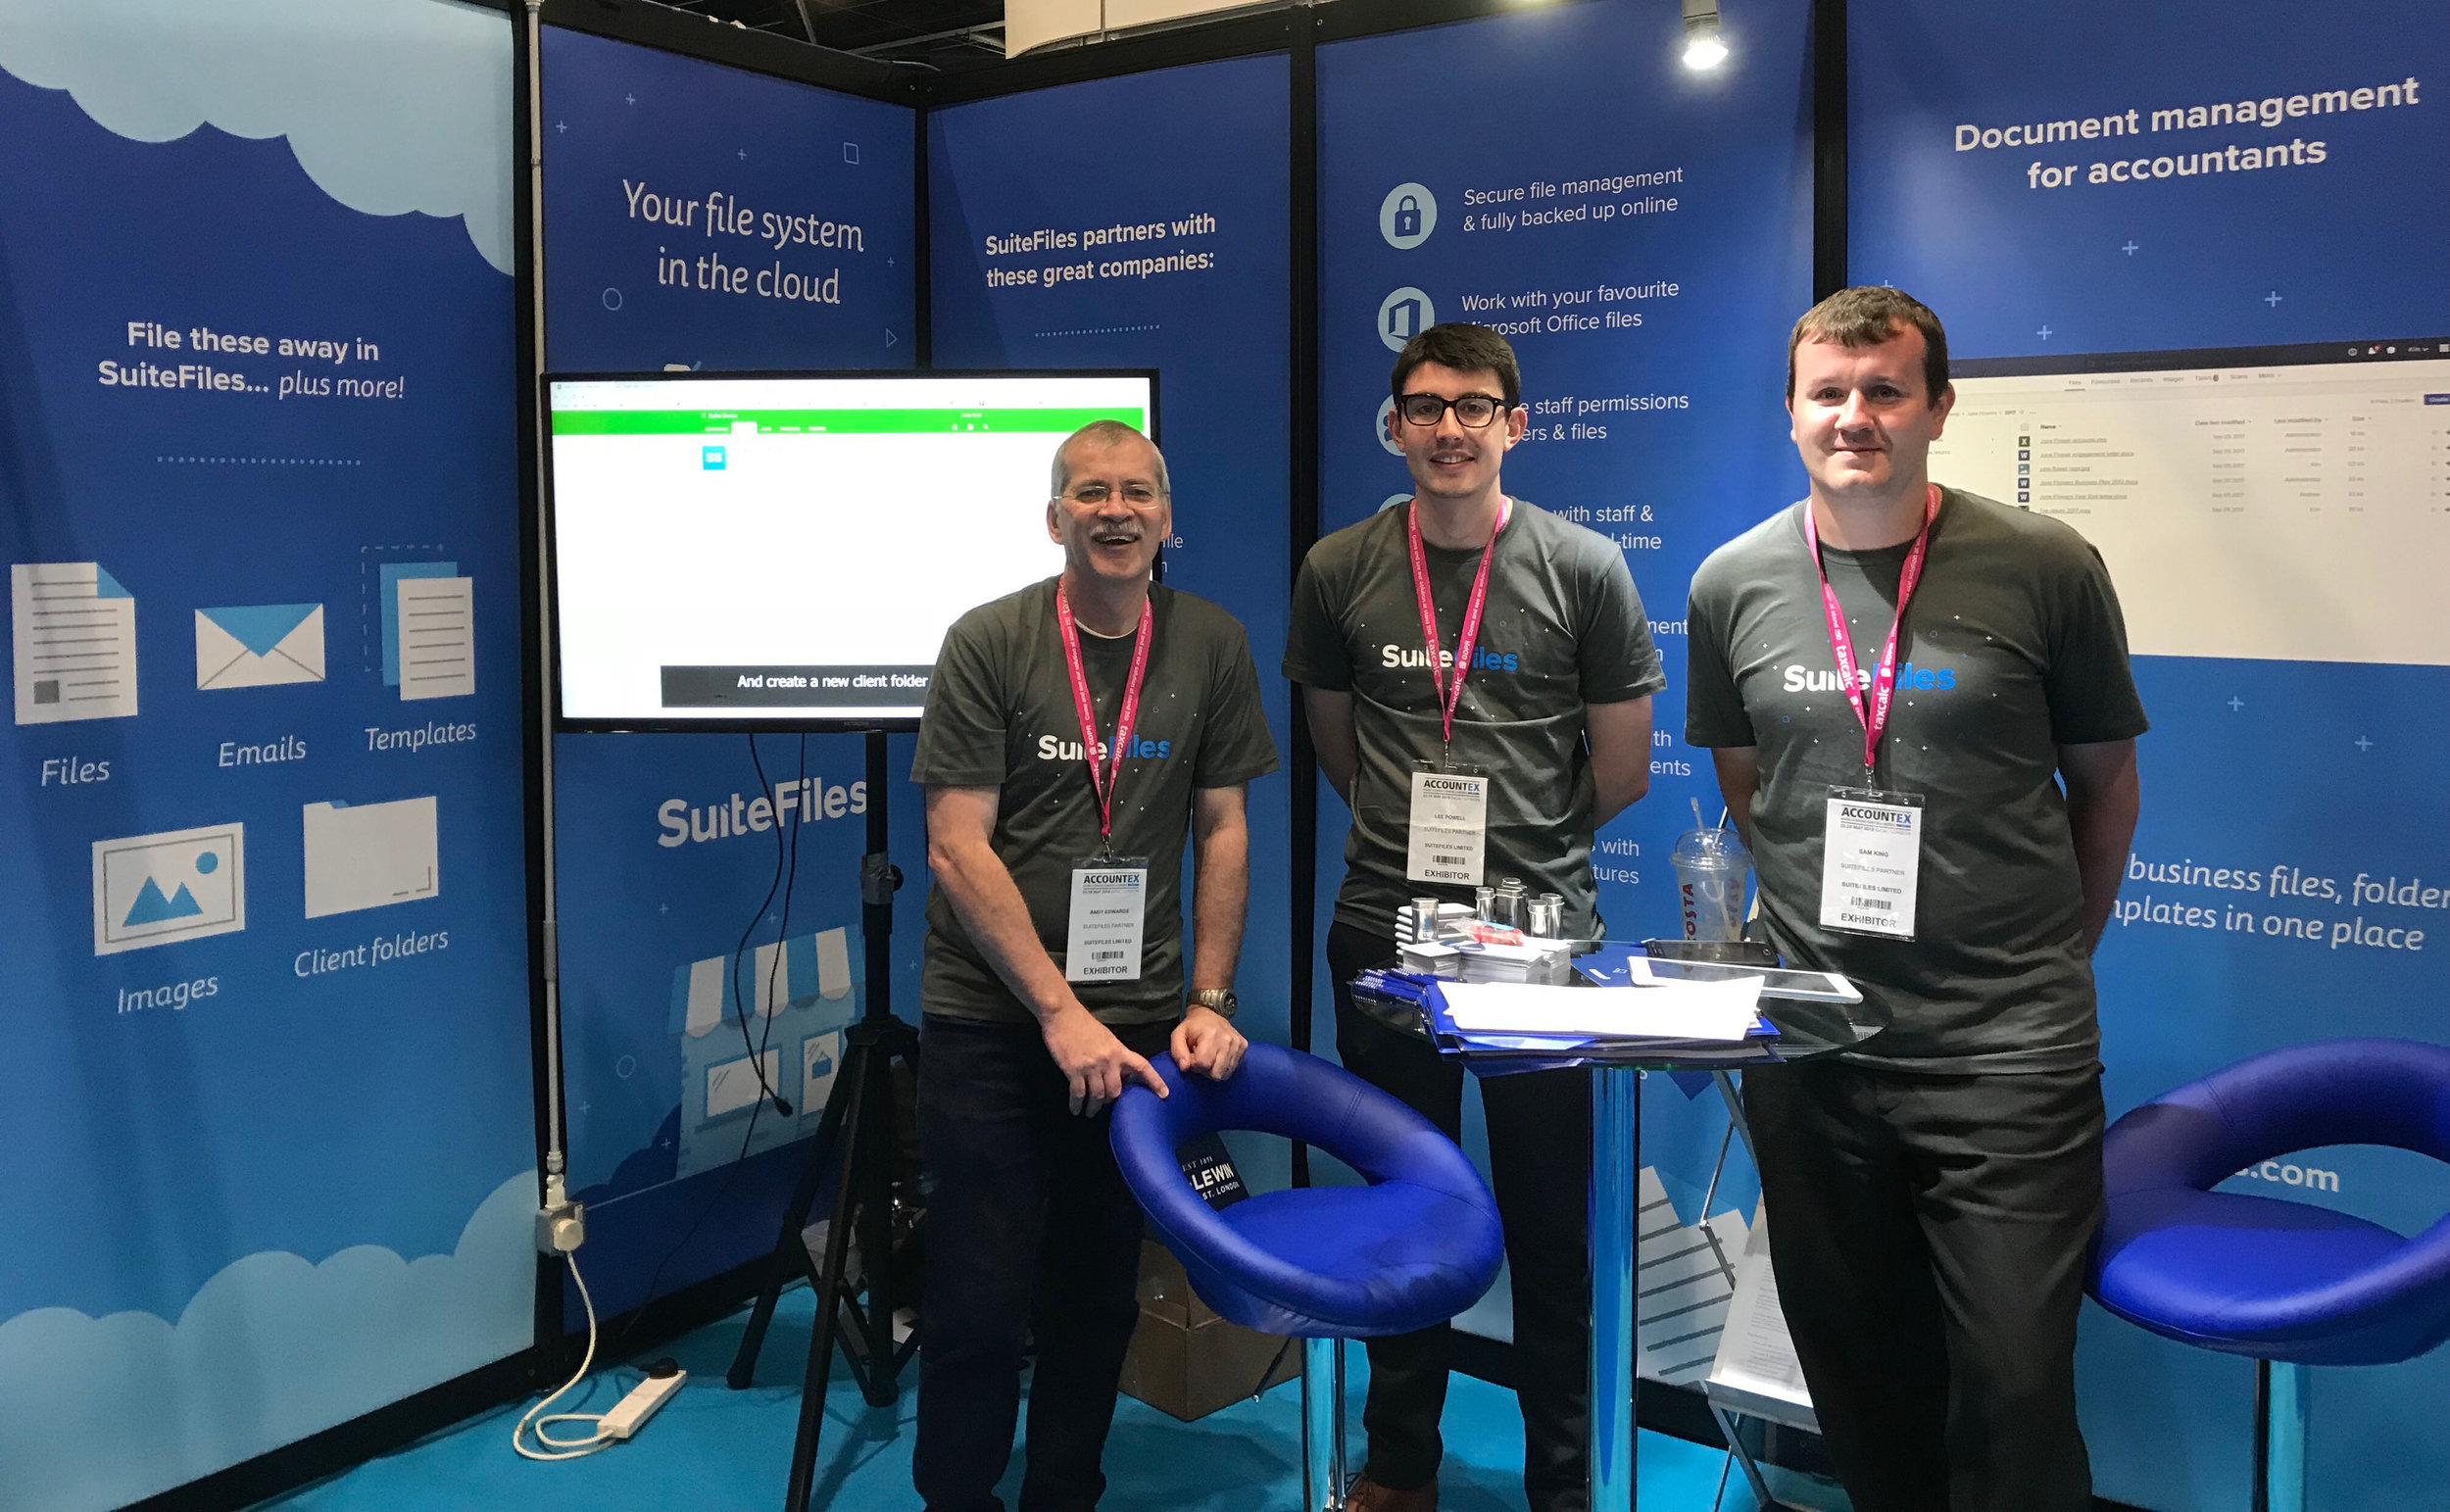 The Bridge3 team manning the SuiteFiles stand at Accountex London 2018